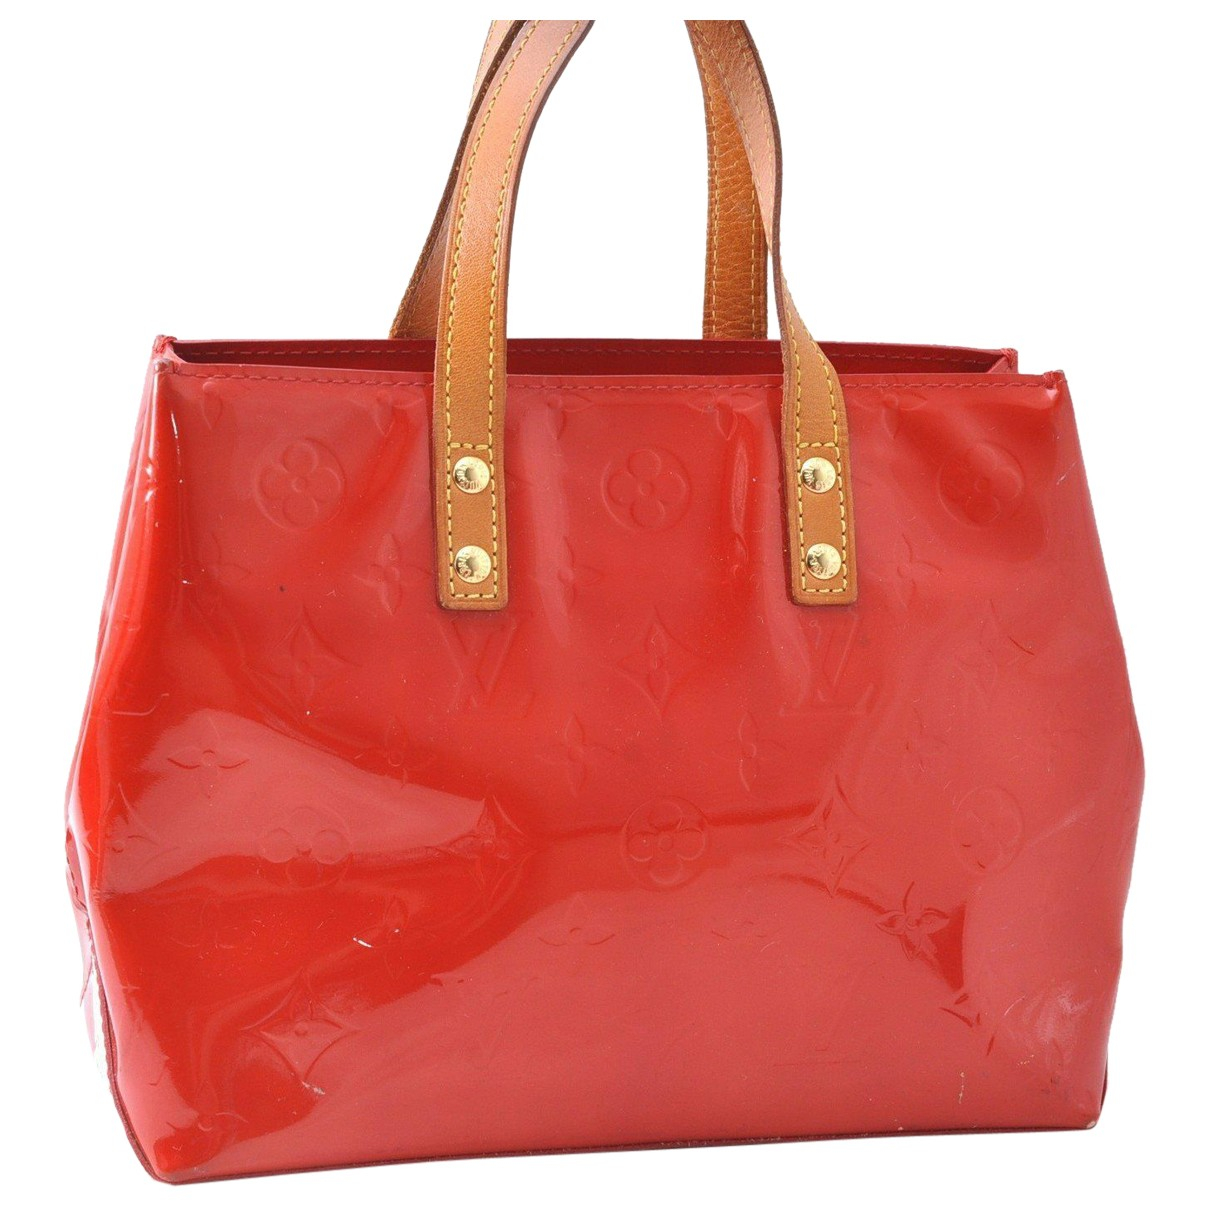 Louis Vuitton N Red Patent leather handbag for Women N